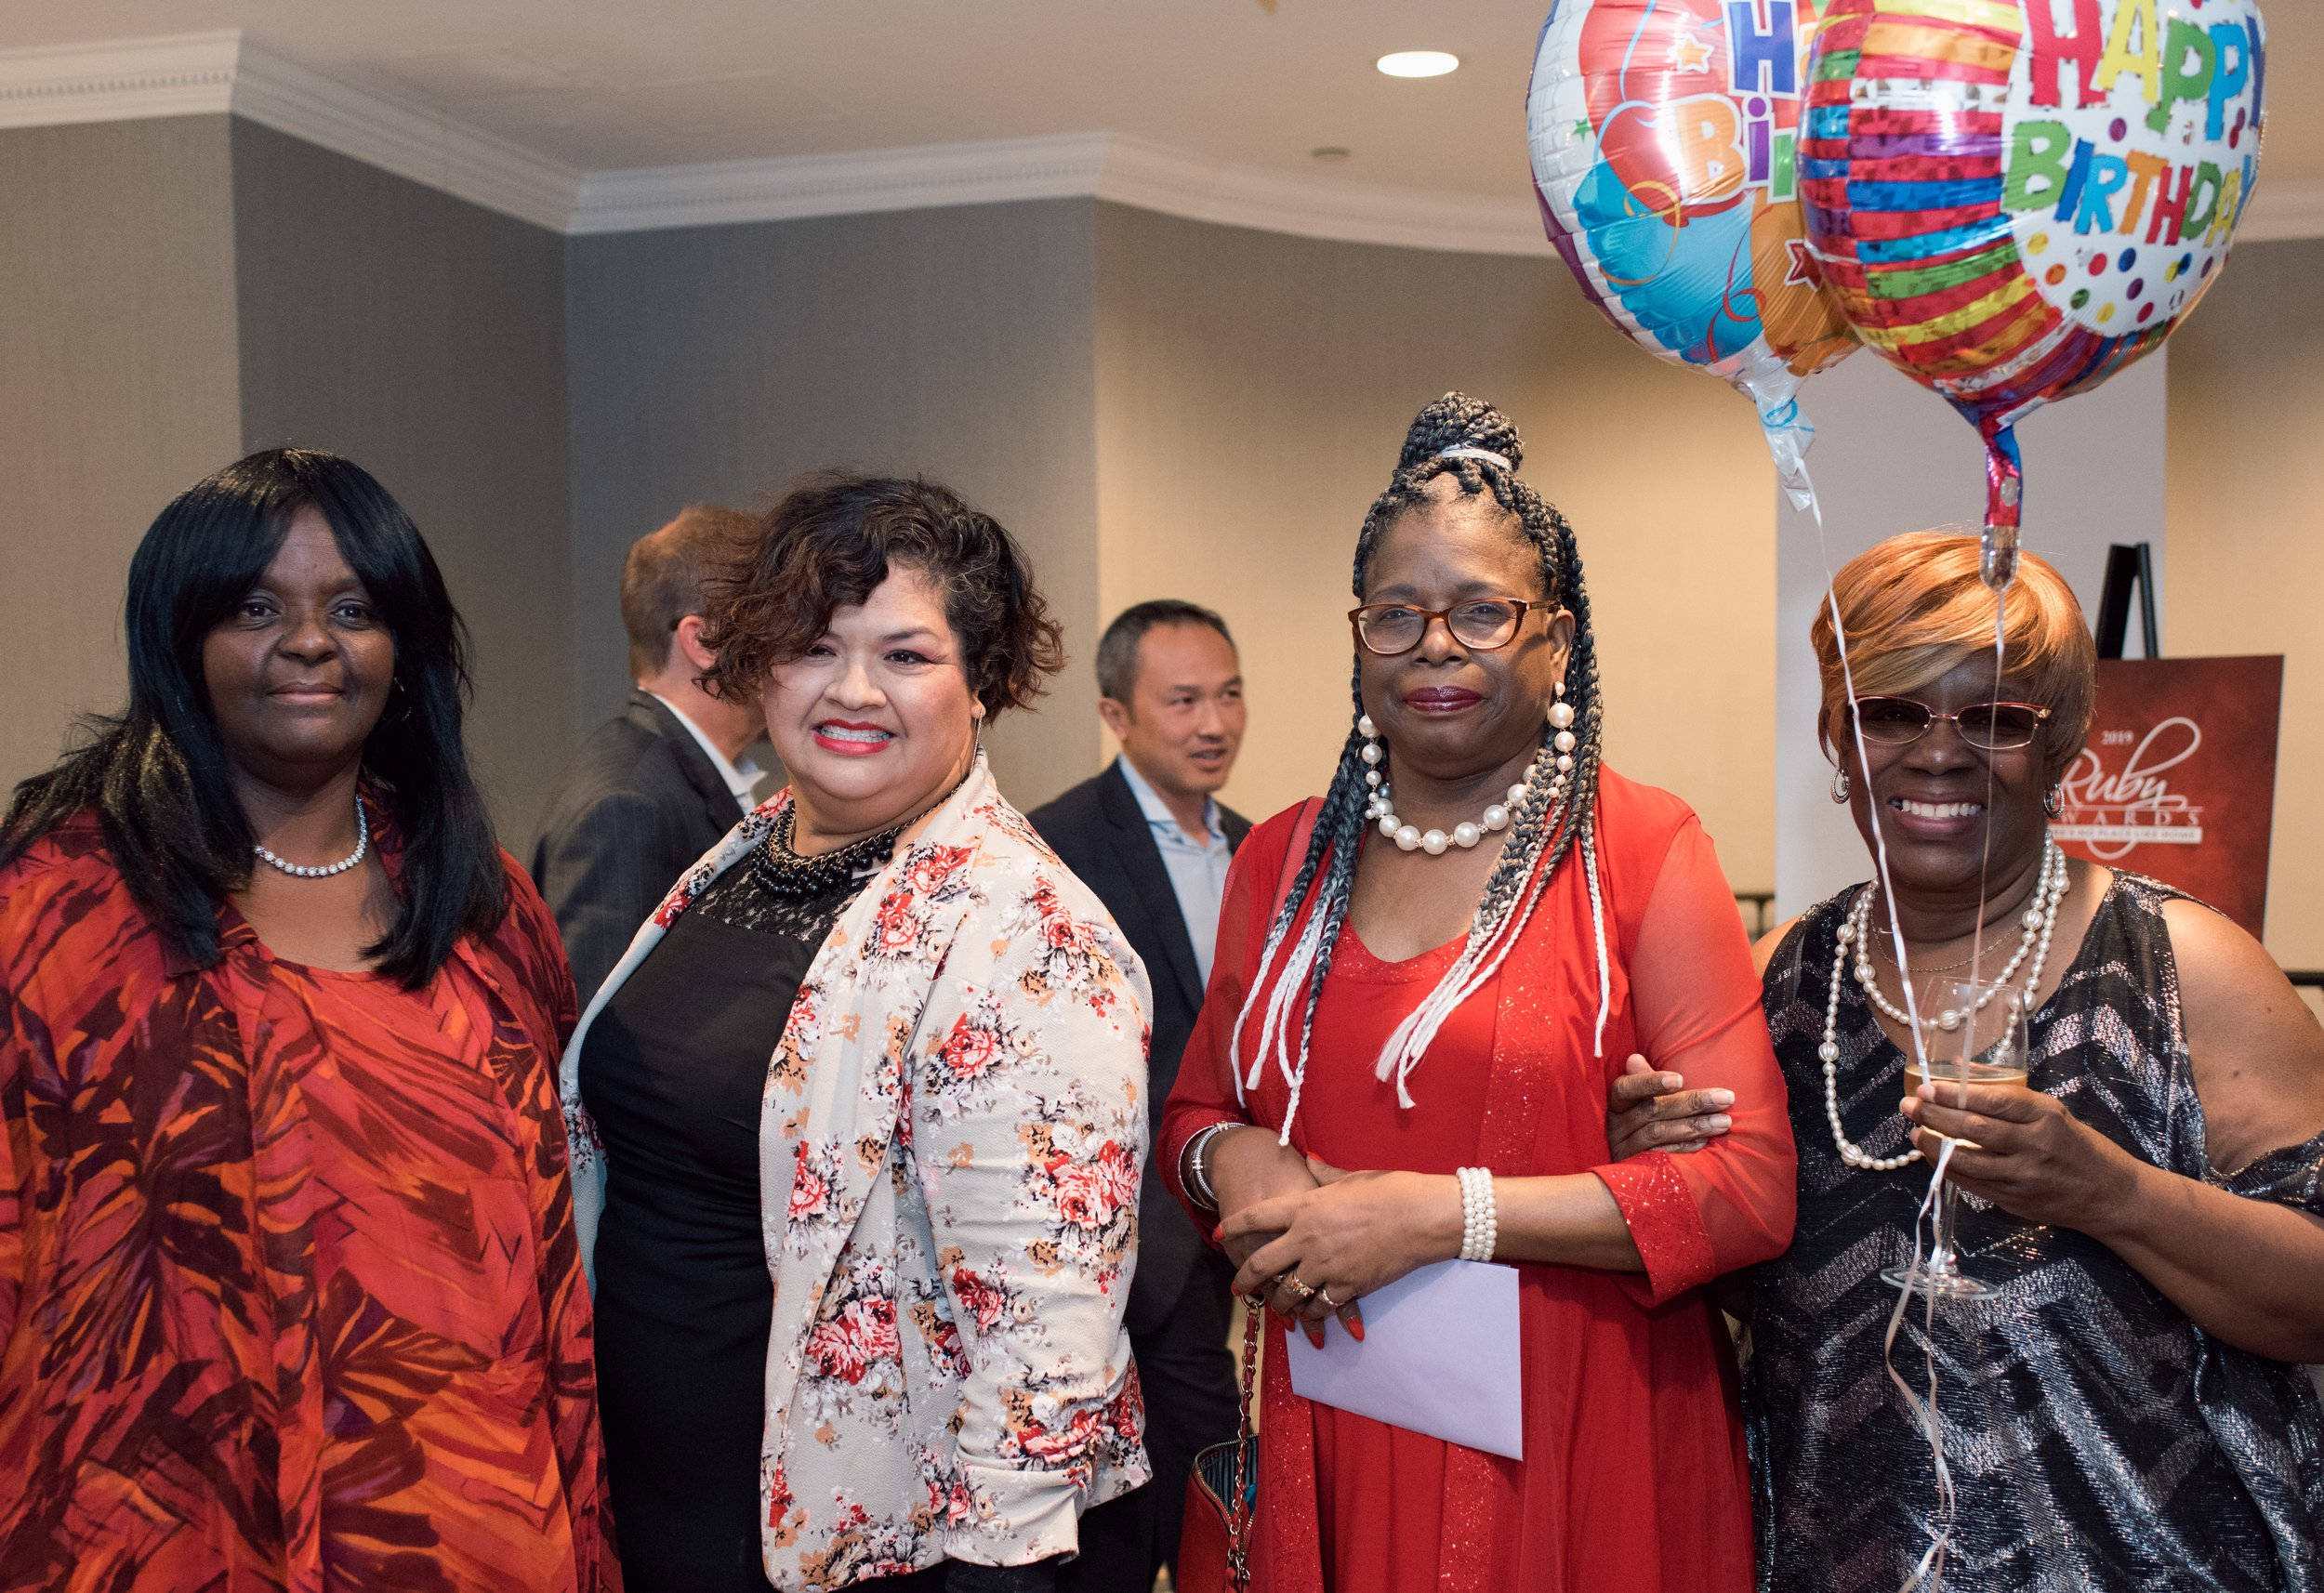 Celebrating Miss Joyce's Birthday at the Ruby's, May 2019